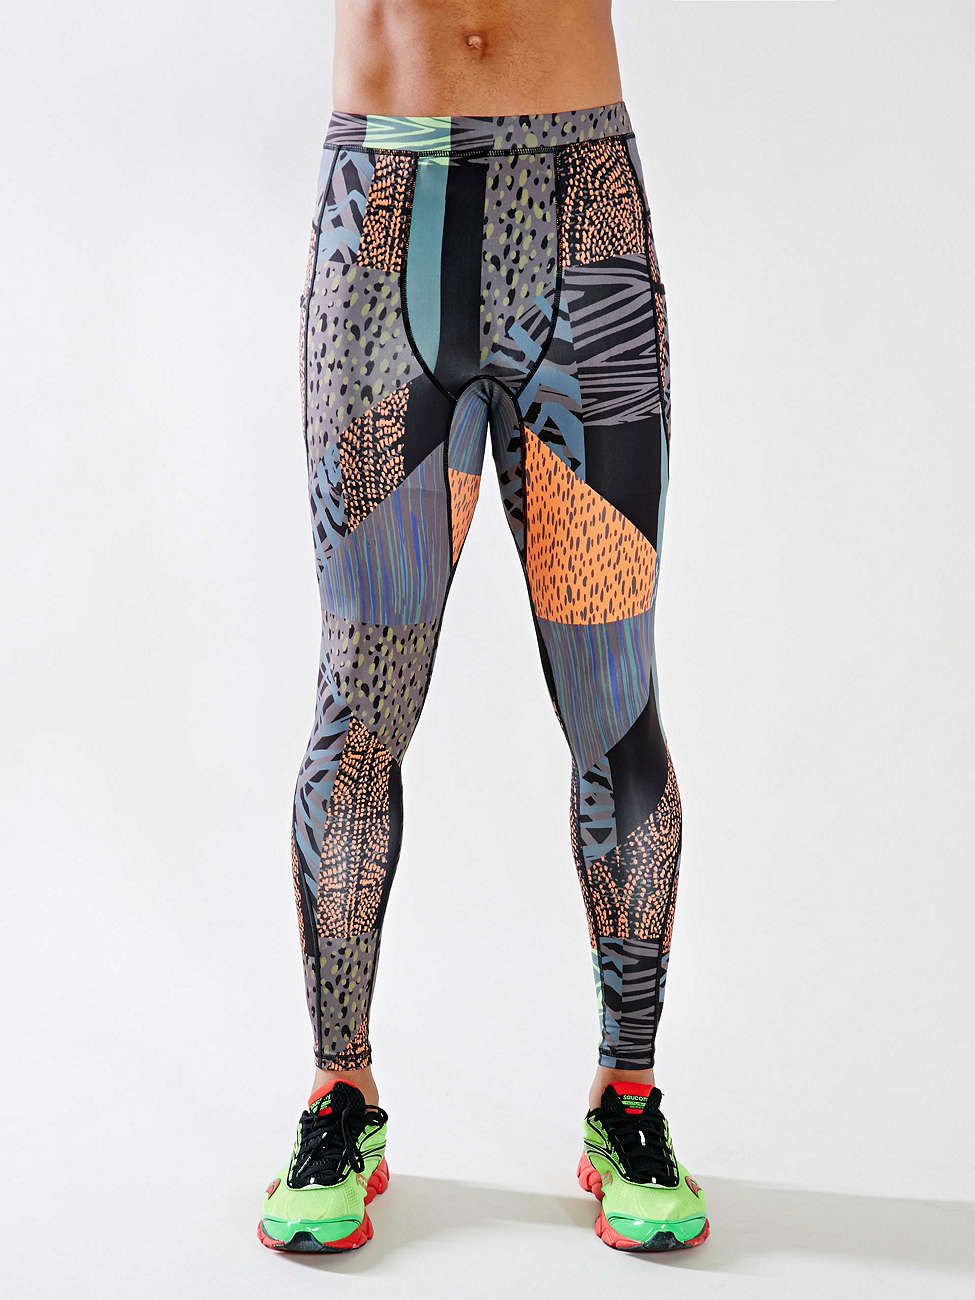 f01a663118b8a5 Without Walls Patchy Animal Print Run Tight - Urban Outfitters Coole  Outfits, Sport-leggings